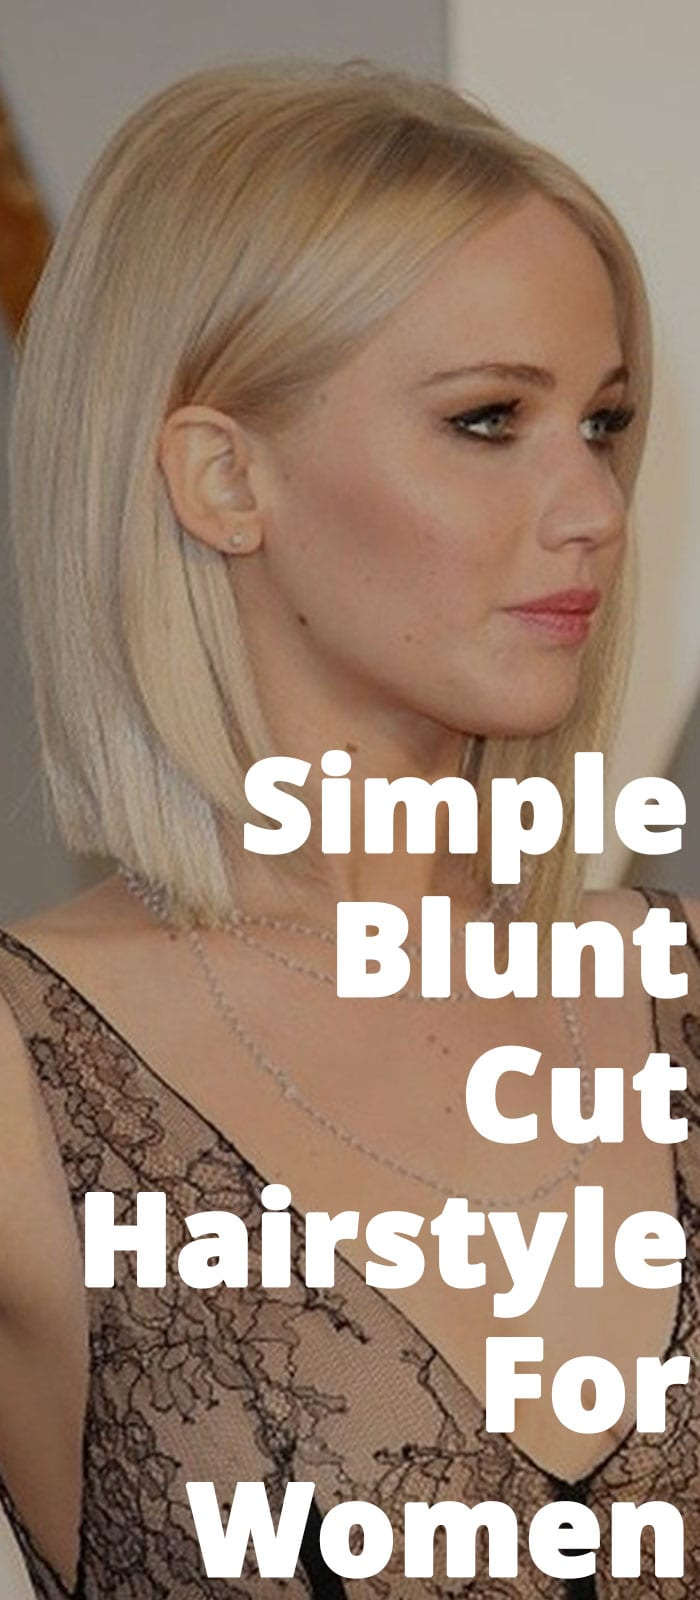 Simple Blunt Cut Hairstyle For Women!